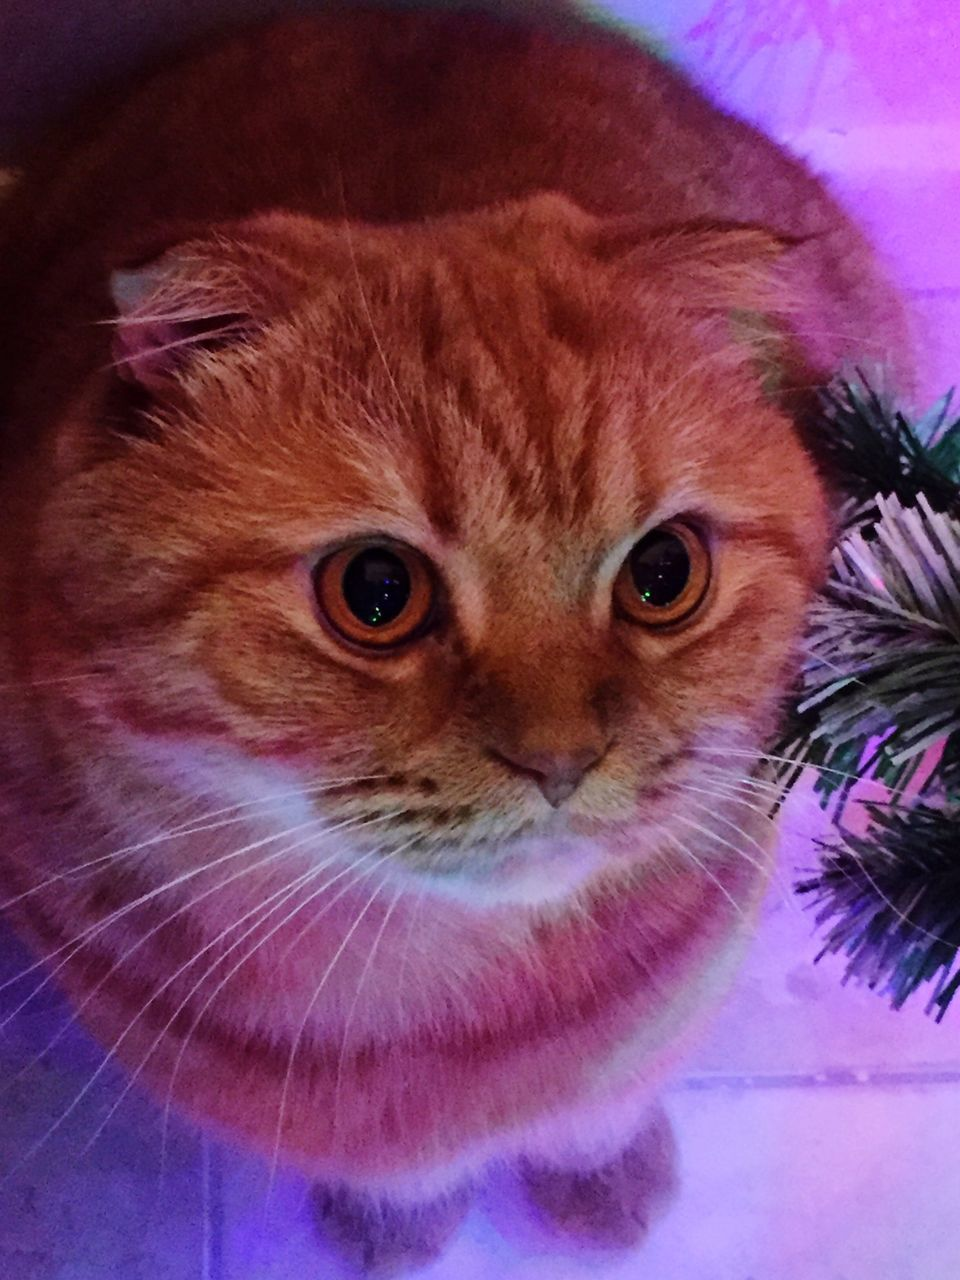 pets, domestic cat, domestic animals, animal themes, one animal, mammal, whisker, indoors, feline, looking at camera, no people, portrait, close-up, day